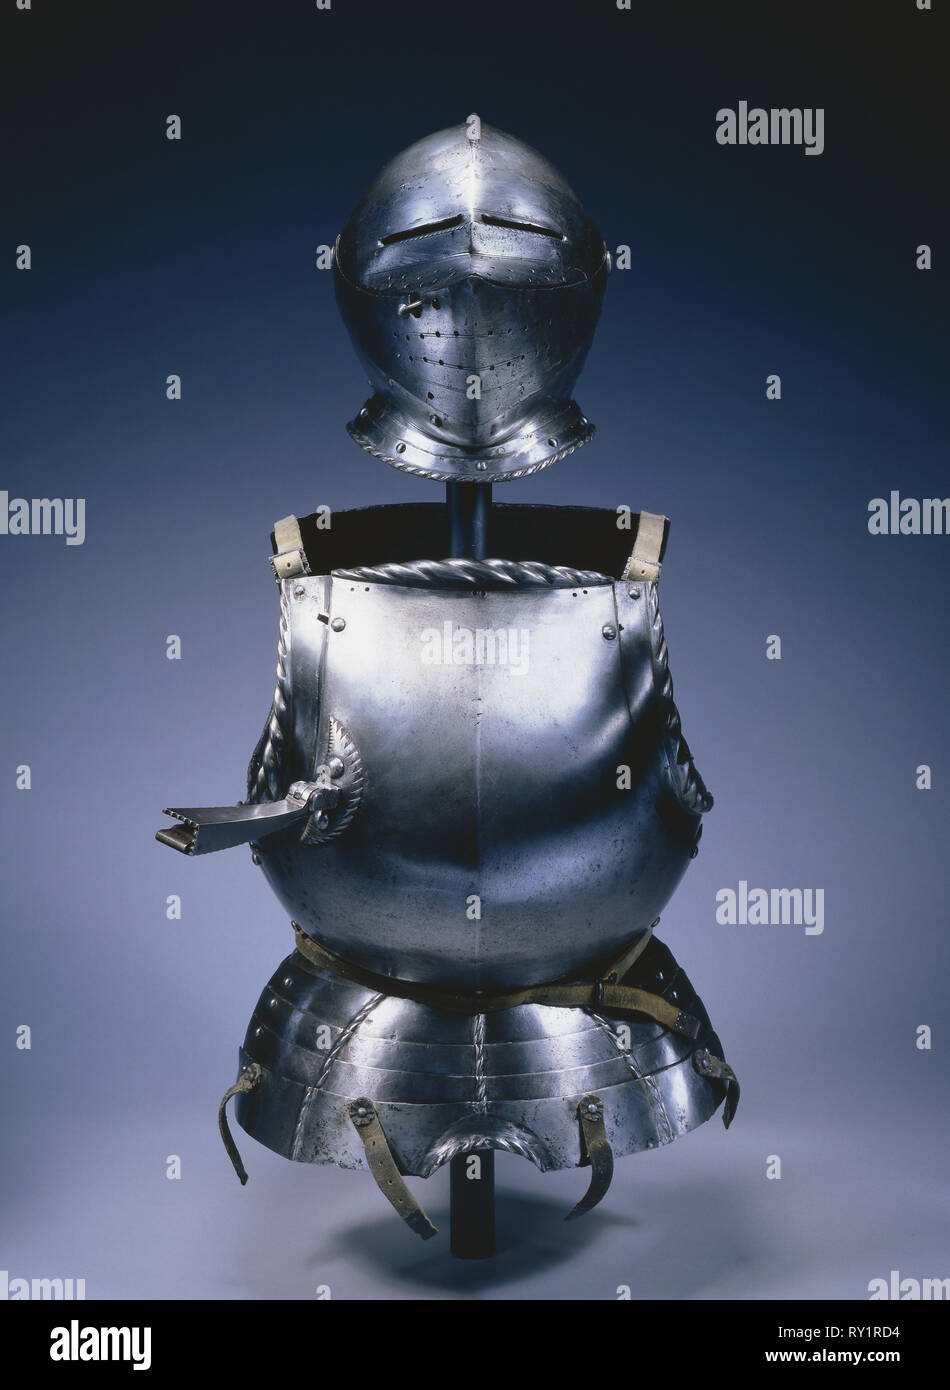 Elements from a Partial Suit of Armor, c. 1510-1530. Germany, 16th century. Steel with black paint - Stock Image